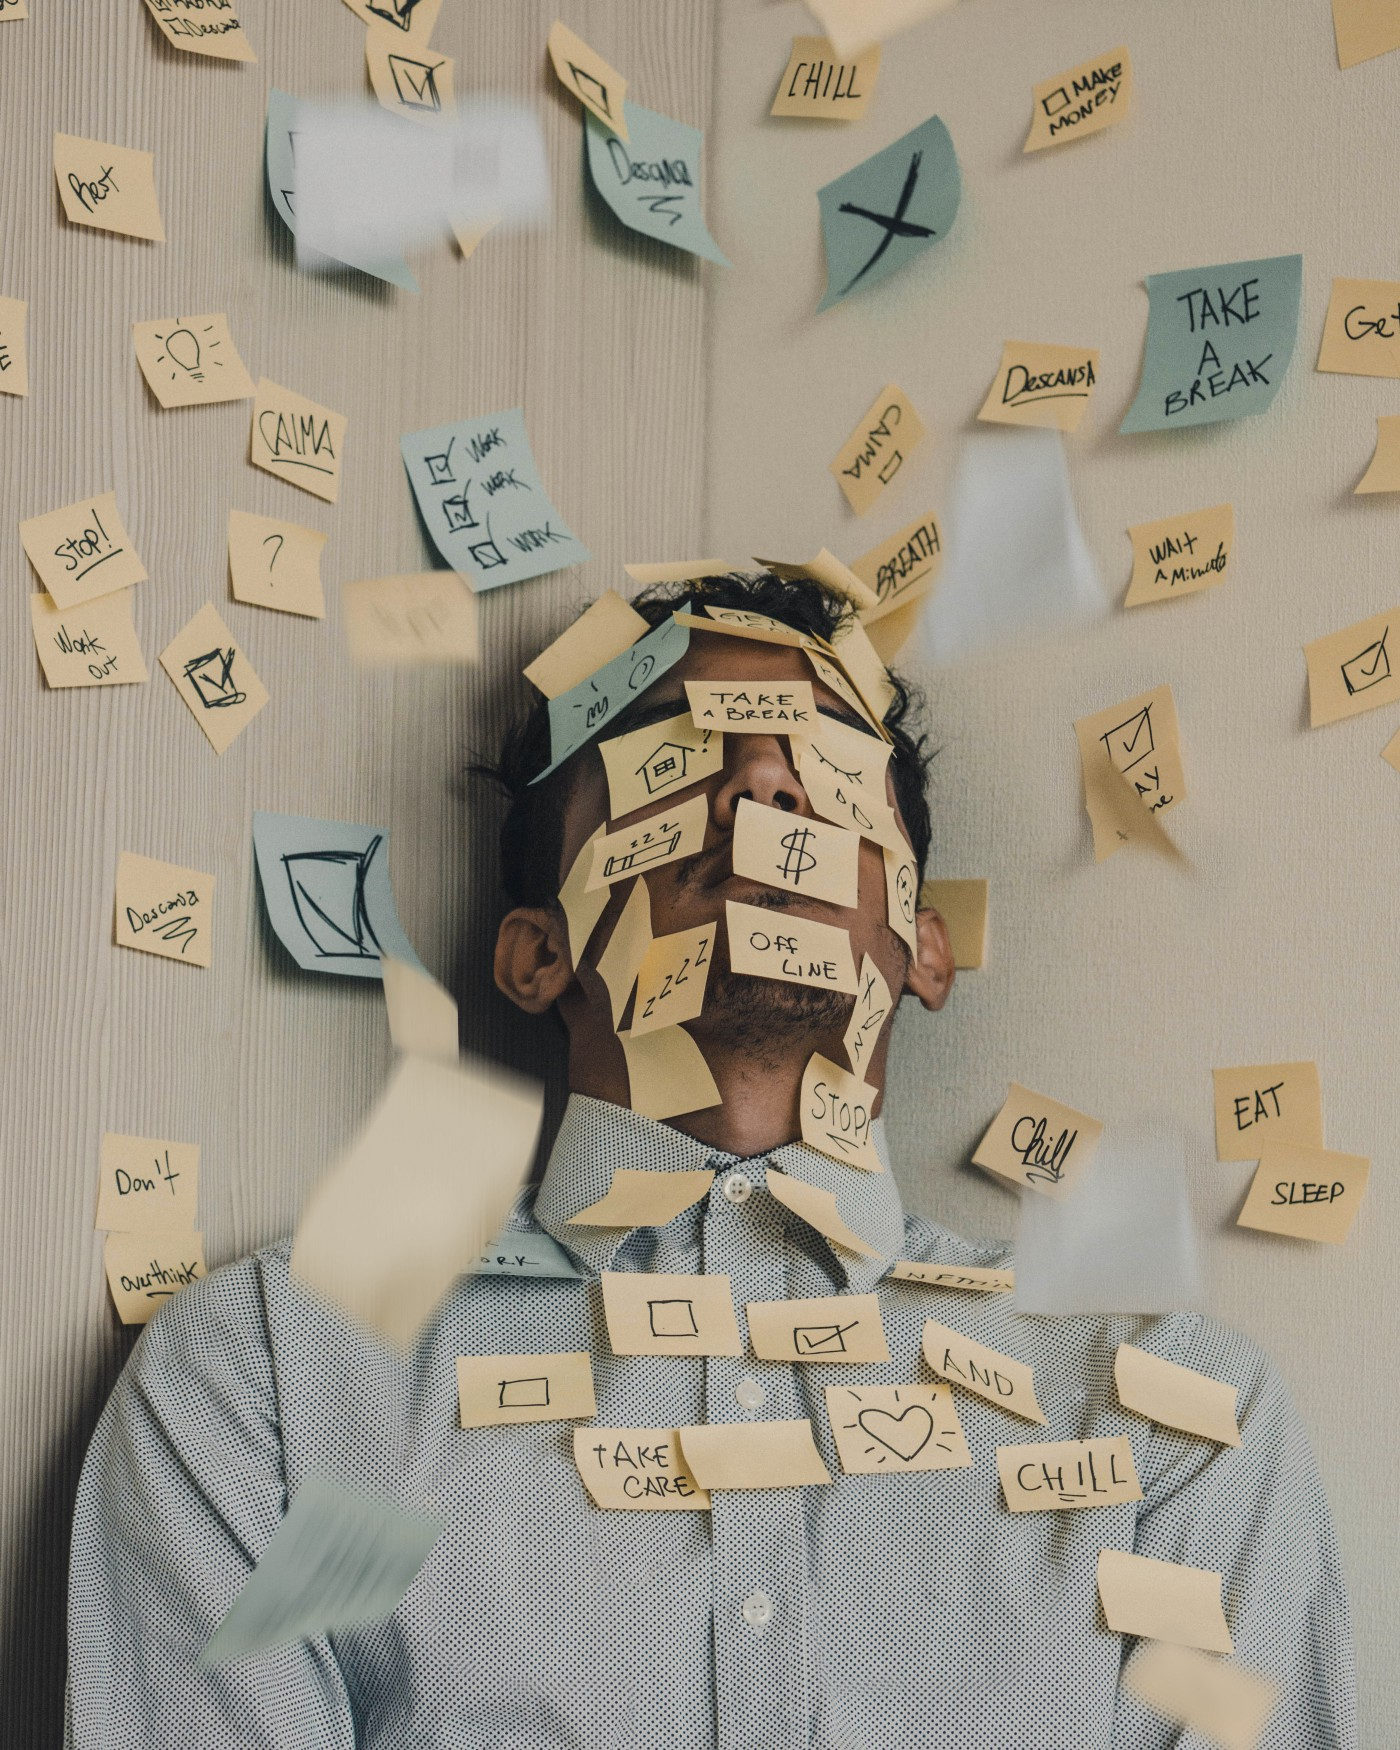 An overwhelmed male with post-it notes all over his face at work